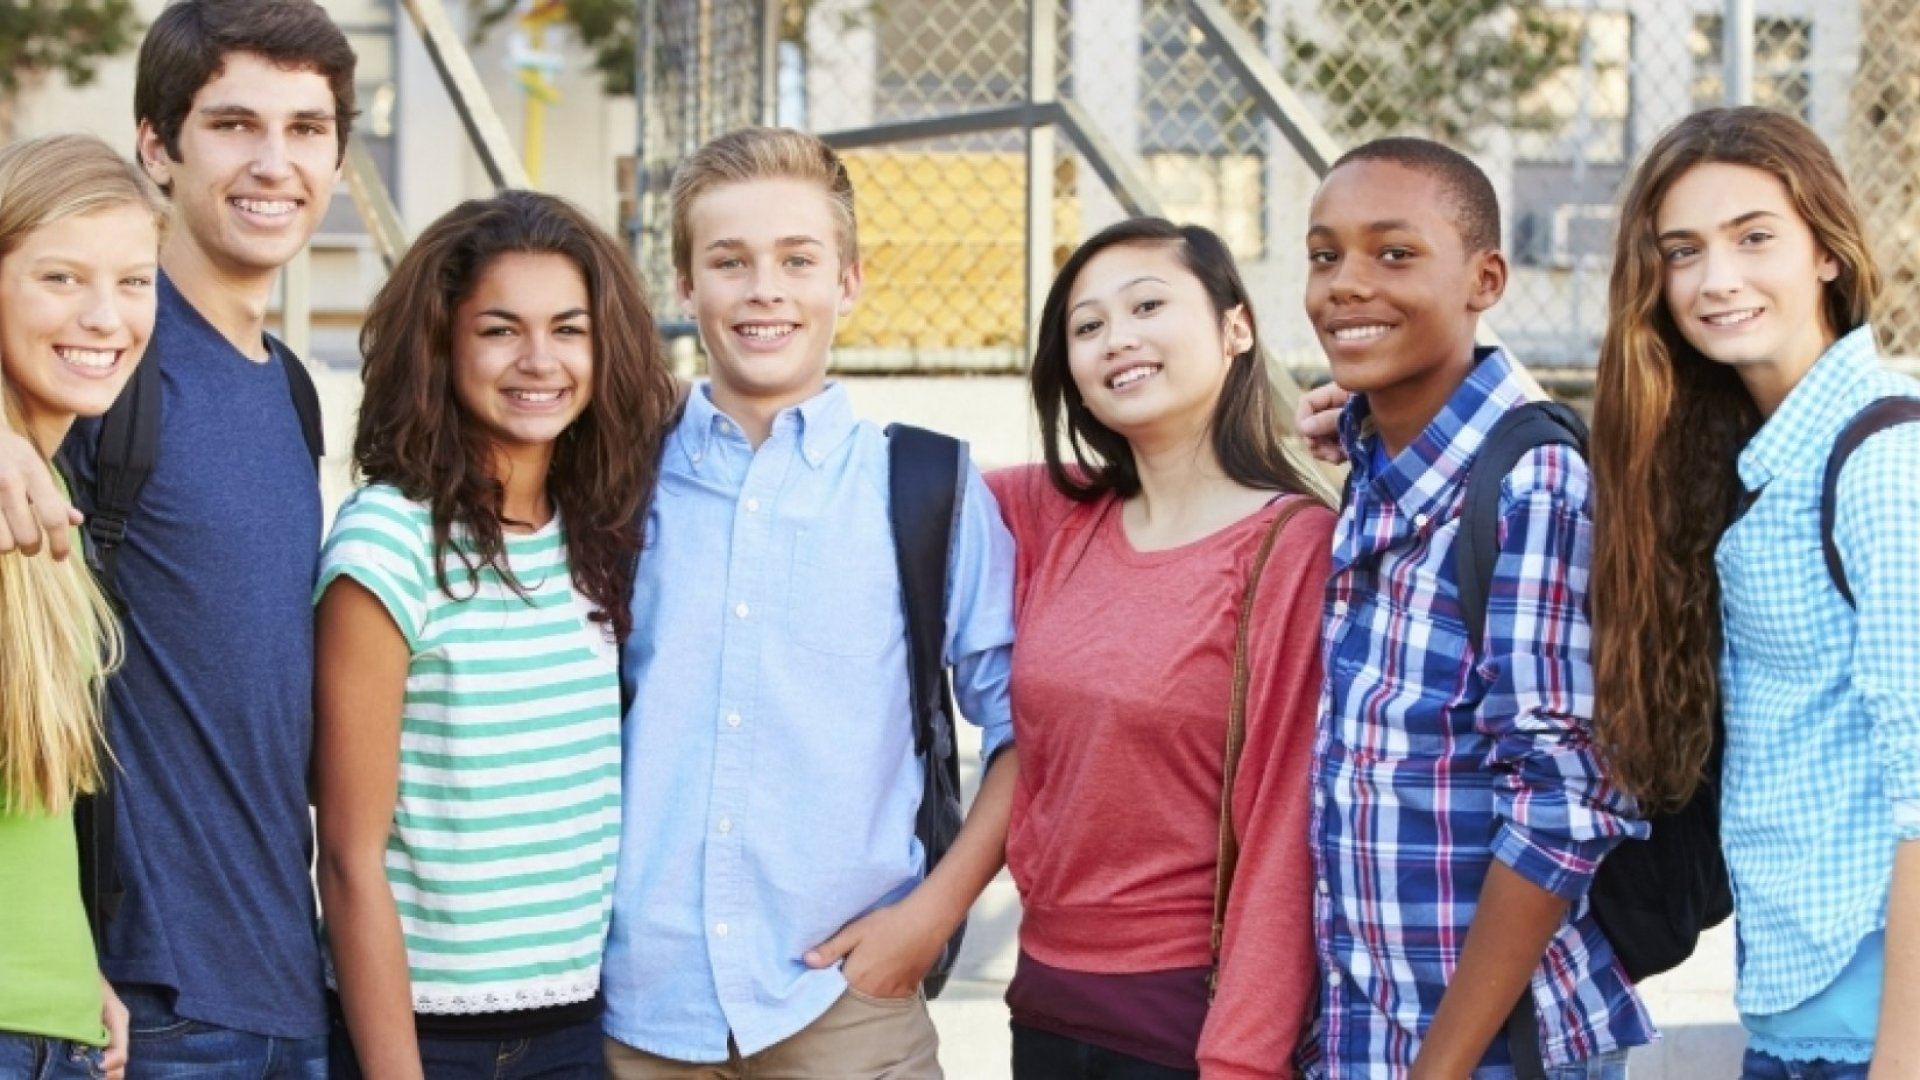 6 Tips to Build Brand Loyalty With Generation Z